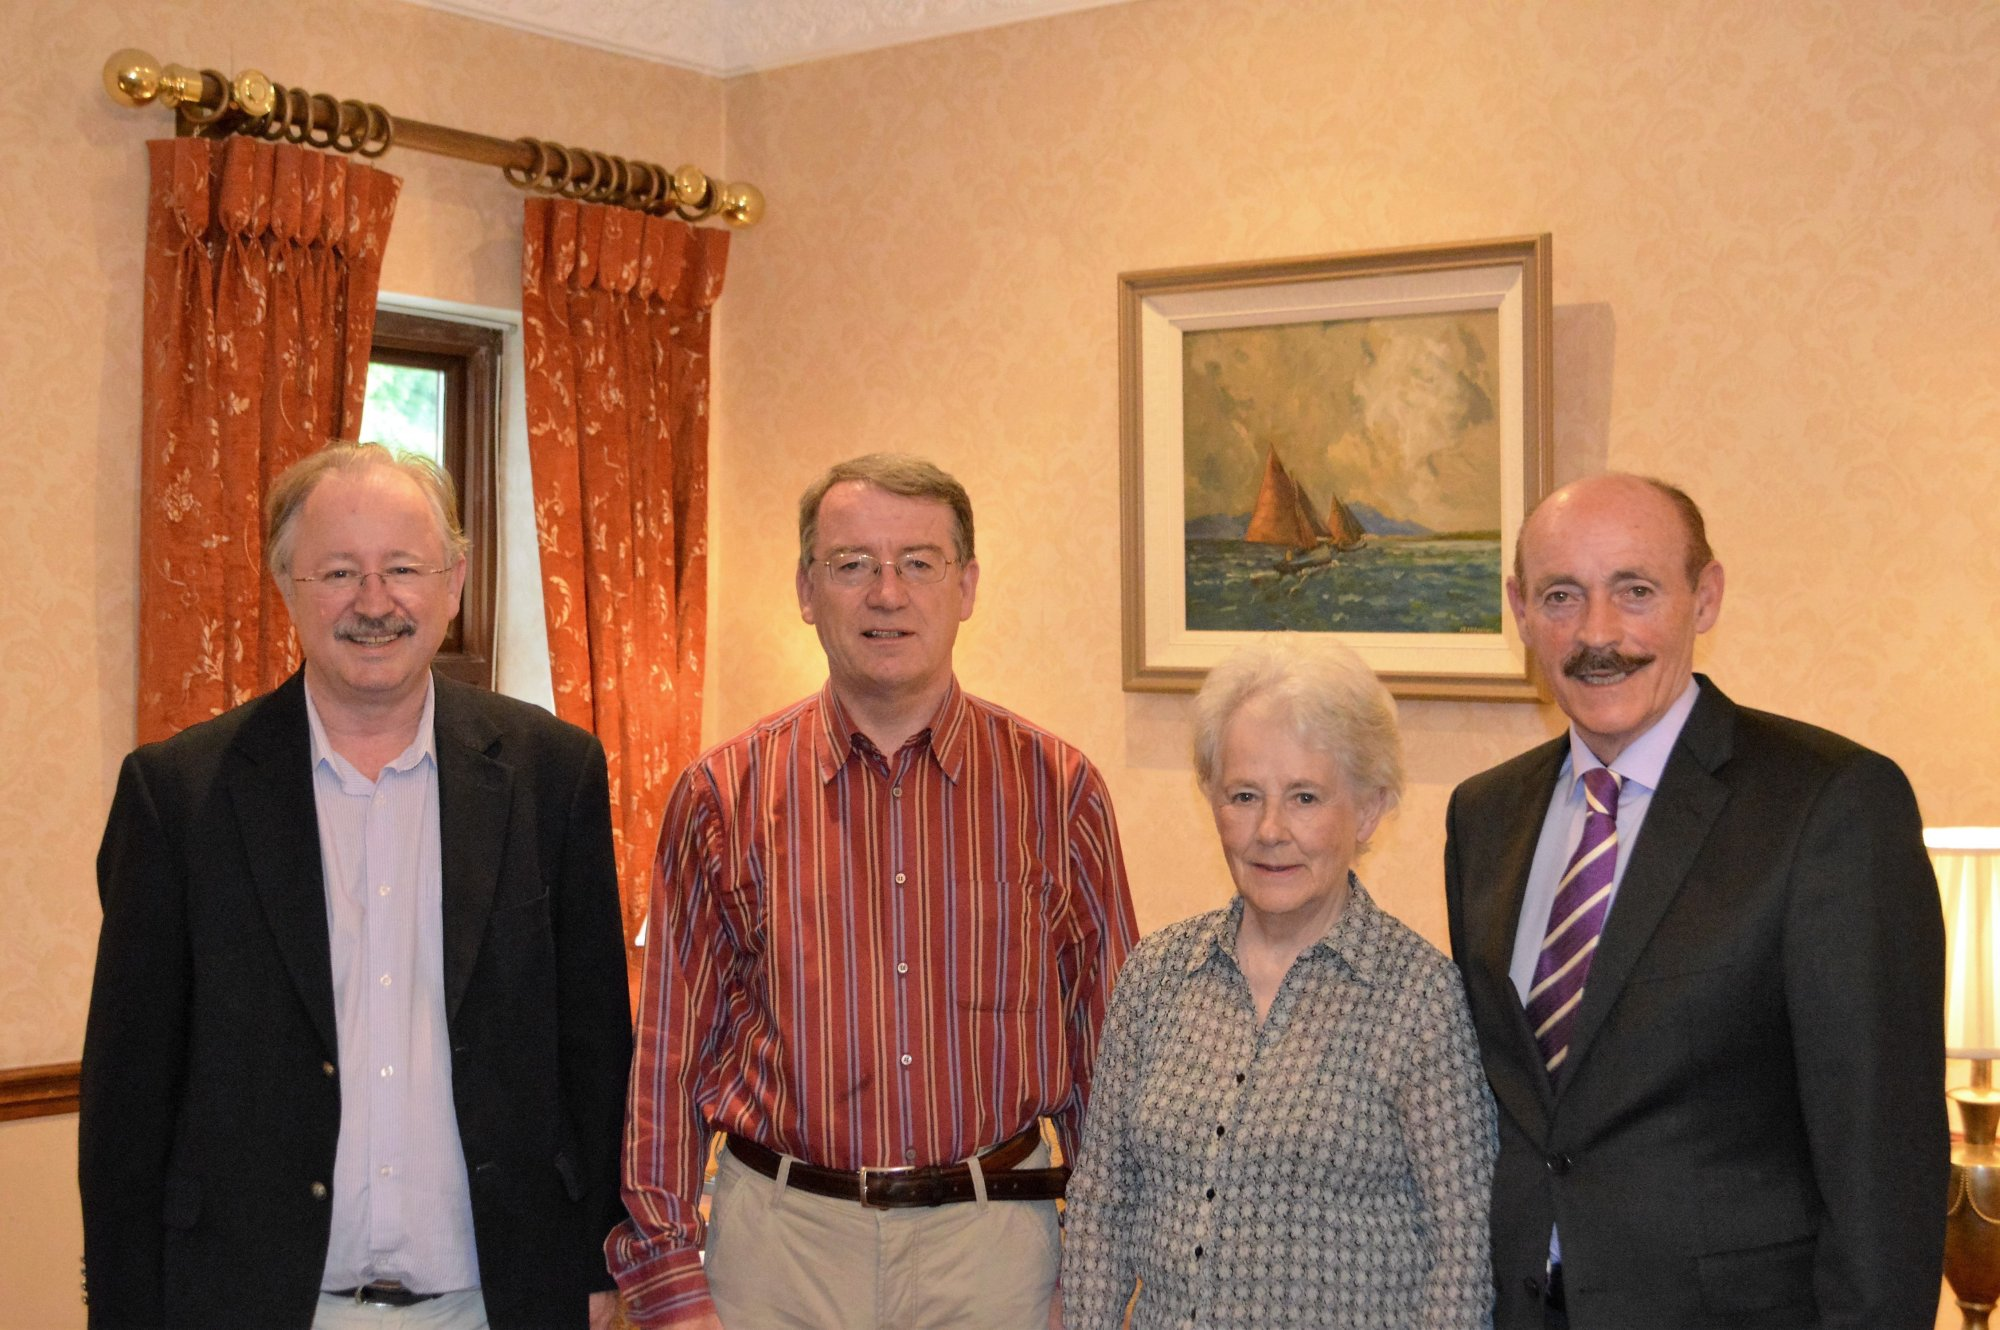 From left: Eugene Jordan, Galway Archaeological and Historical Society; Professor D&aacuteibhi &OacuteCr&oacutein&iacuten; Doreen McBride, Vice-Chair of FULS and Michael Gaynor, Chair of FLHS